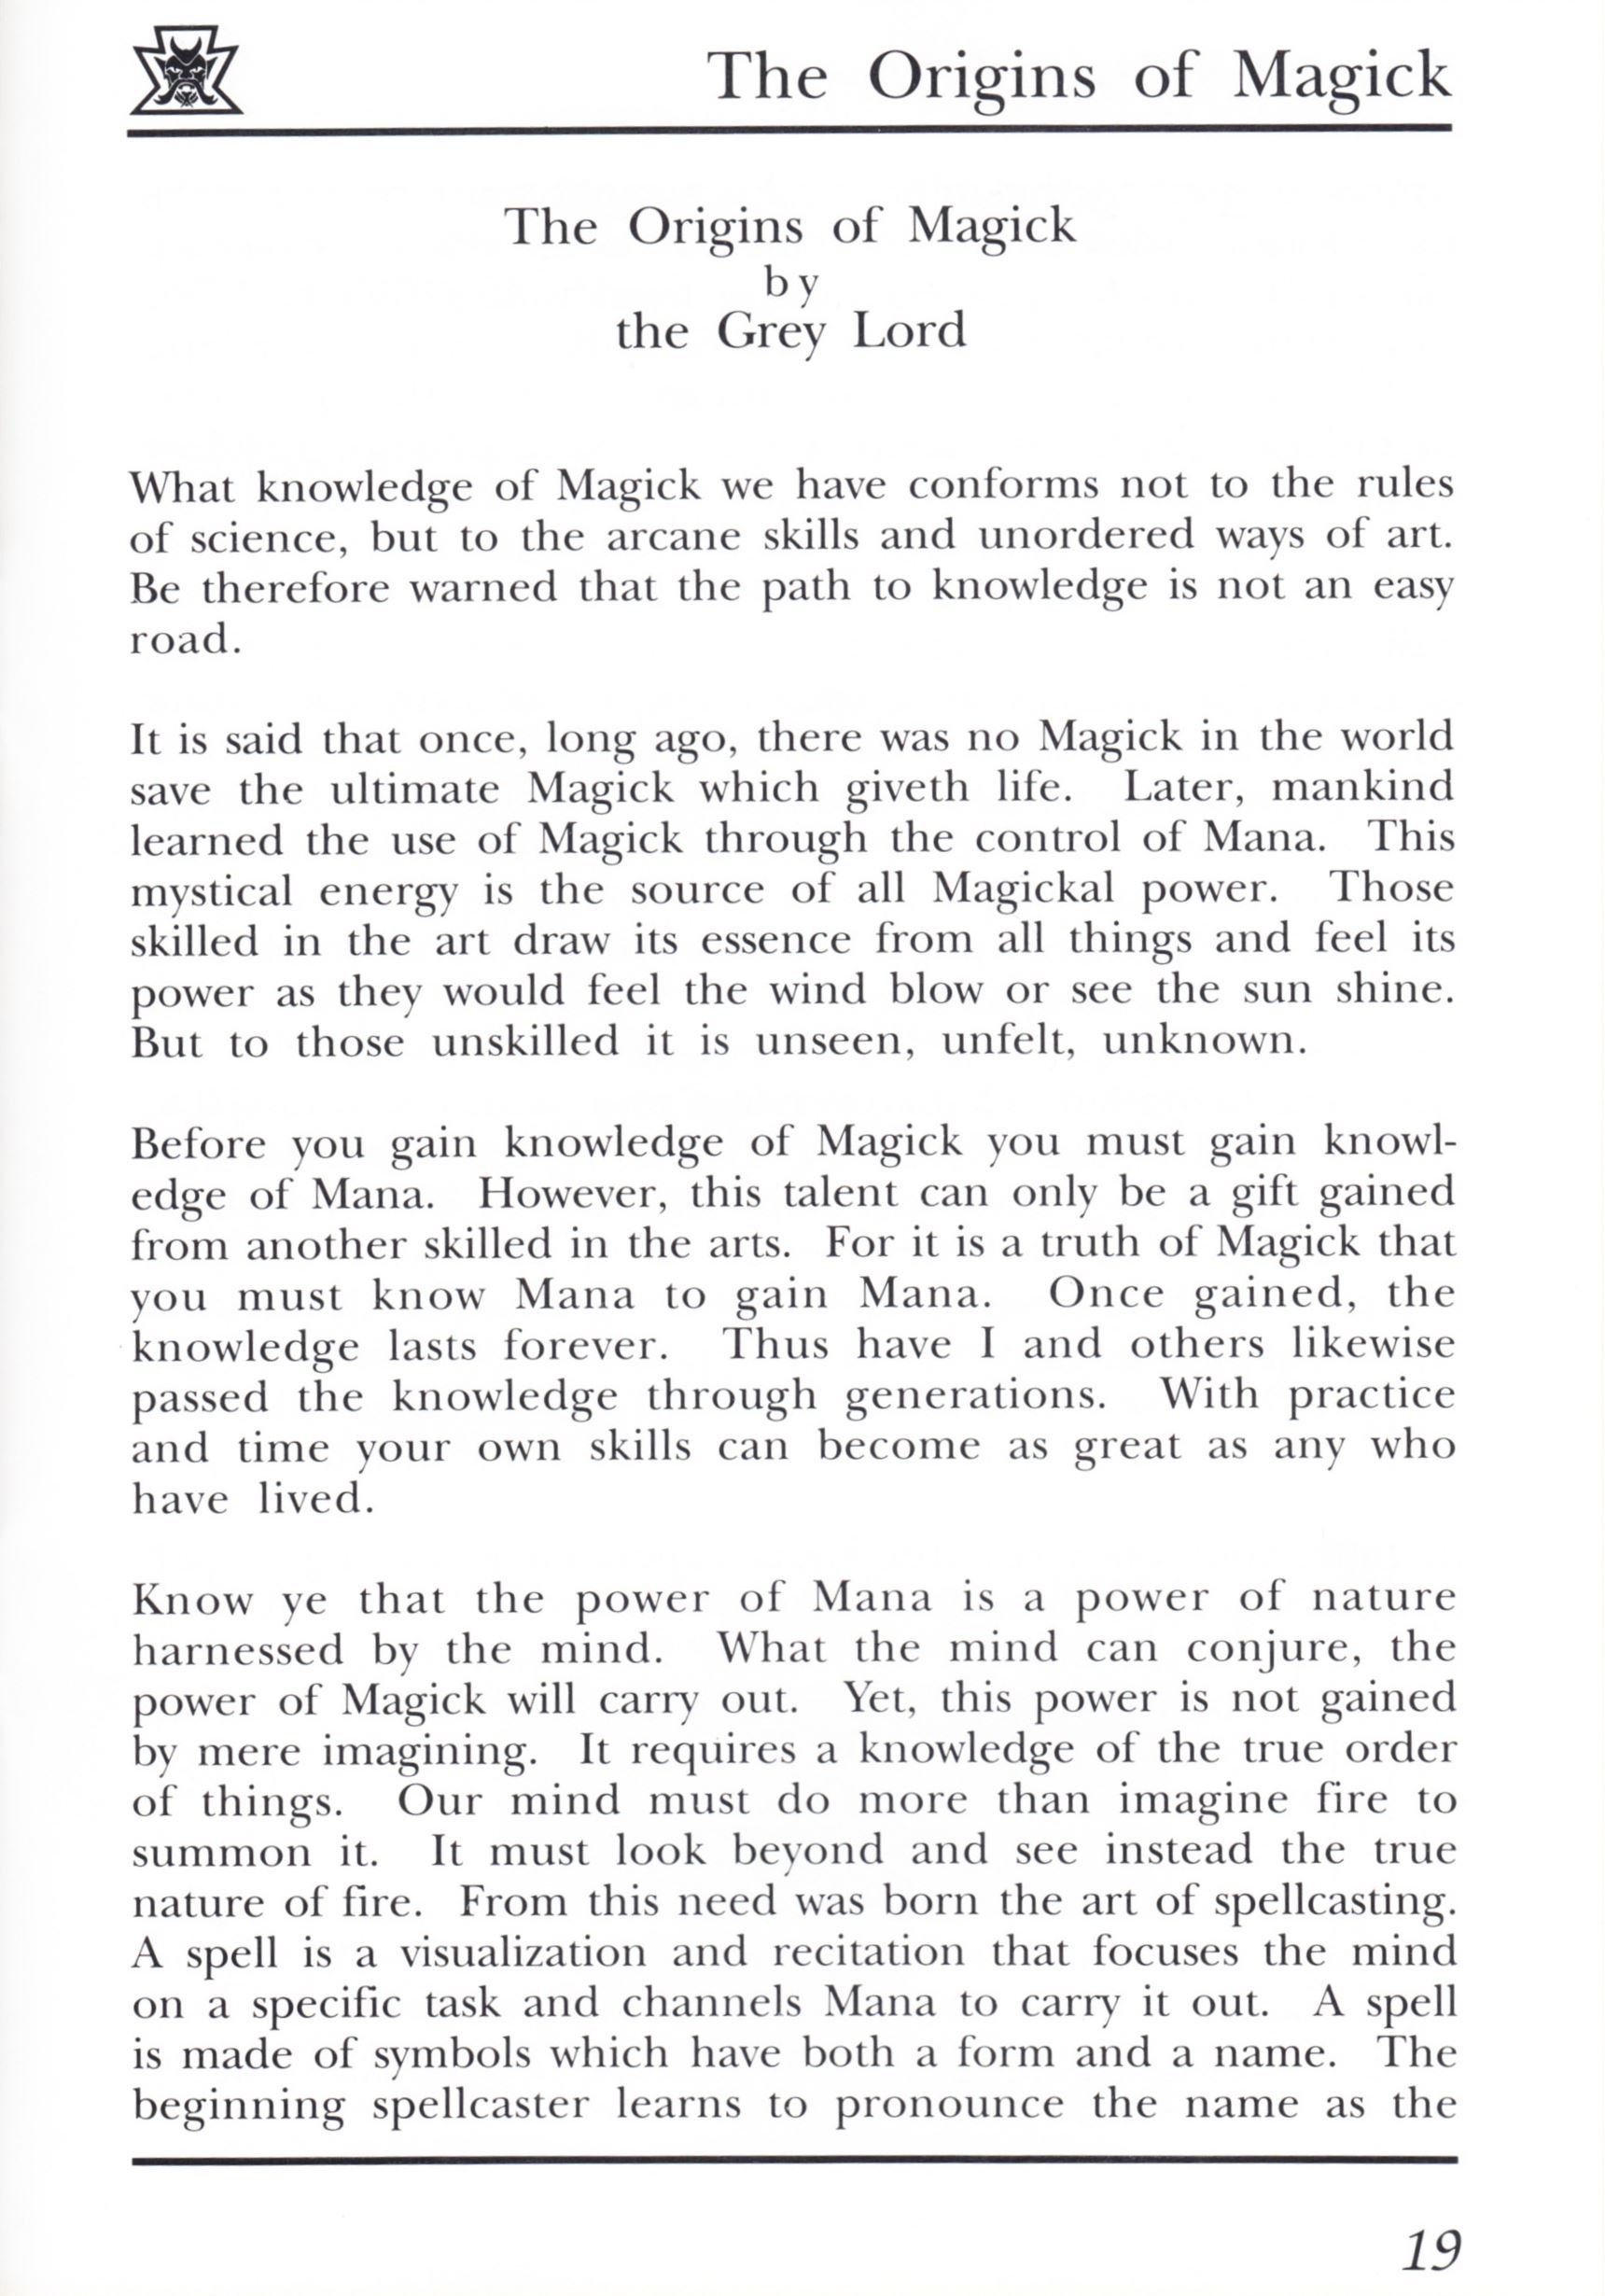 Game - Dungeon Master - UK - PC - Psygnosis - Manual - Page 039 - Scan